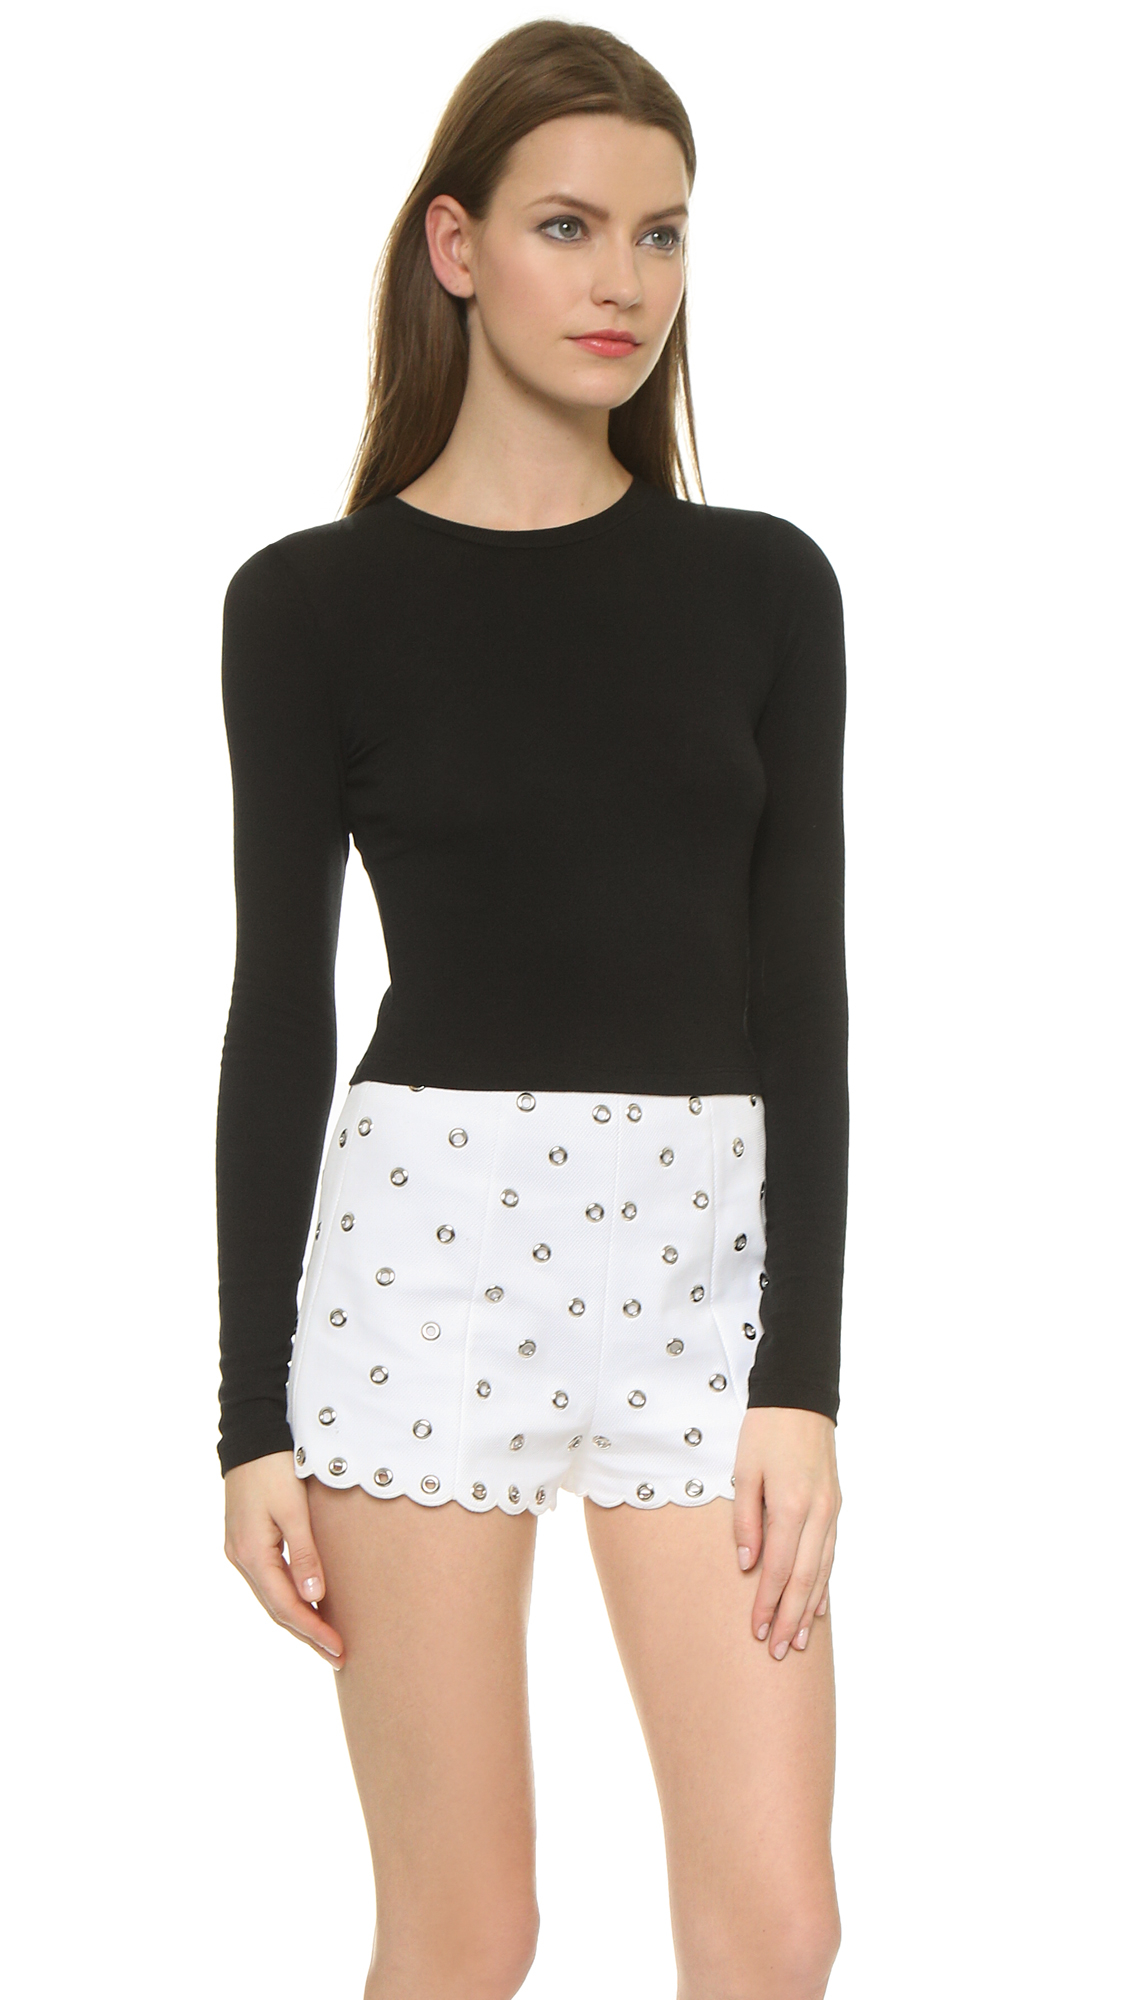 d8e701708d7b7 Air By Alice + Olivia Long Sleeve Crew Crop Top in Black - Lyst